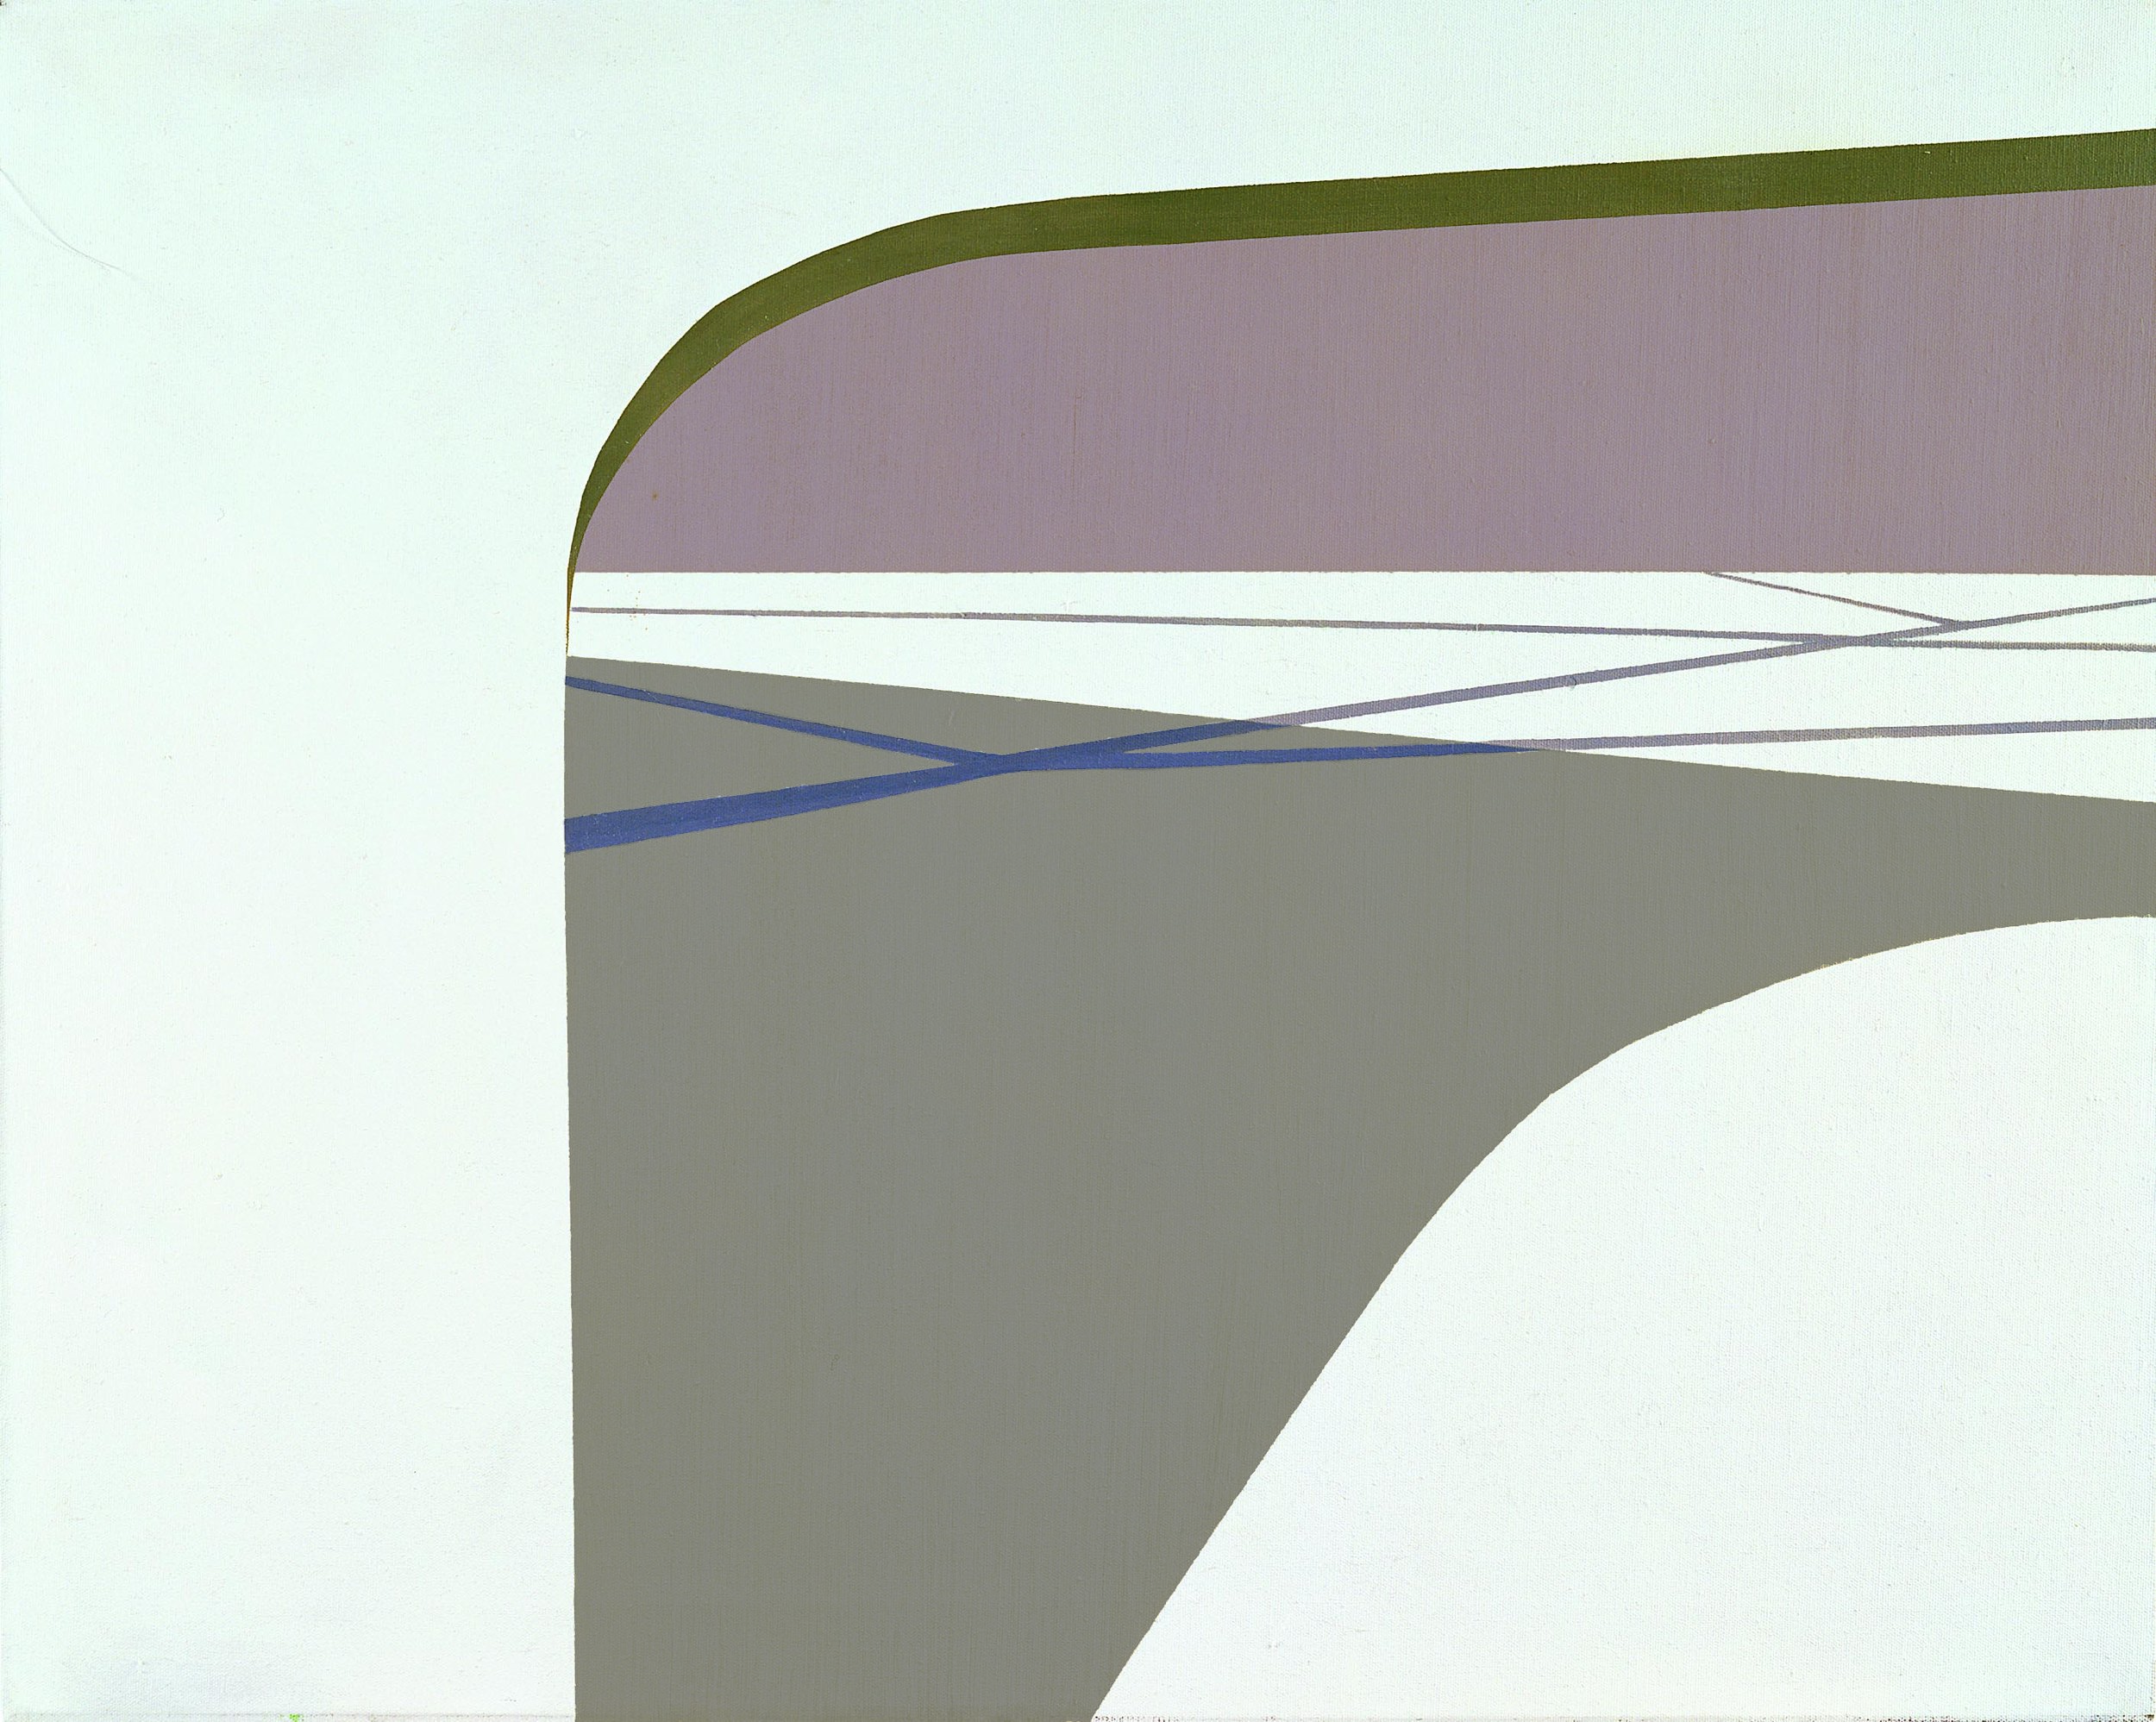 Shadow of the Bridge I , 1962  oil on canvas 24 x 30 inches; 61 x 76.2 centimeters